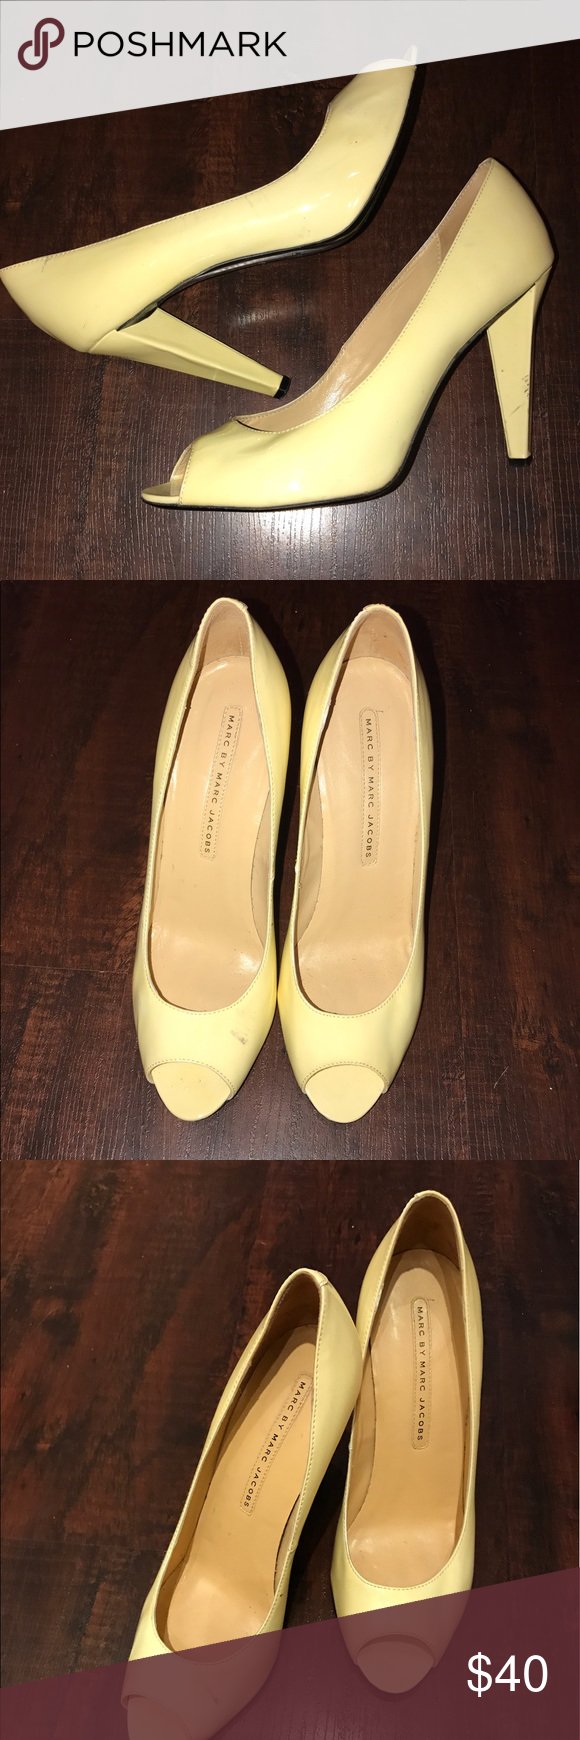 d0f544af5be Very light yellow peep toe pumps 👠 MARC JACOBS💎40💎 best fits a 9 ...